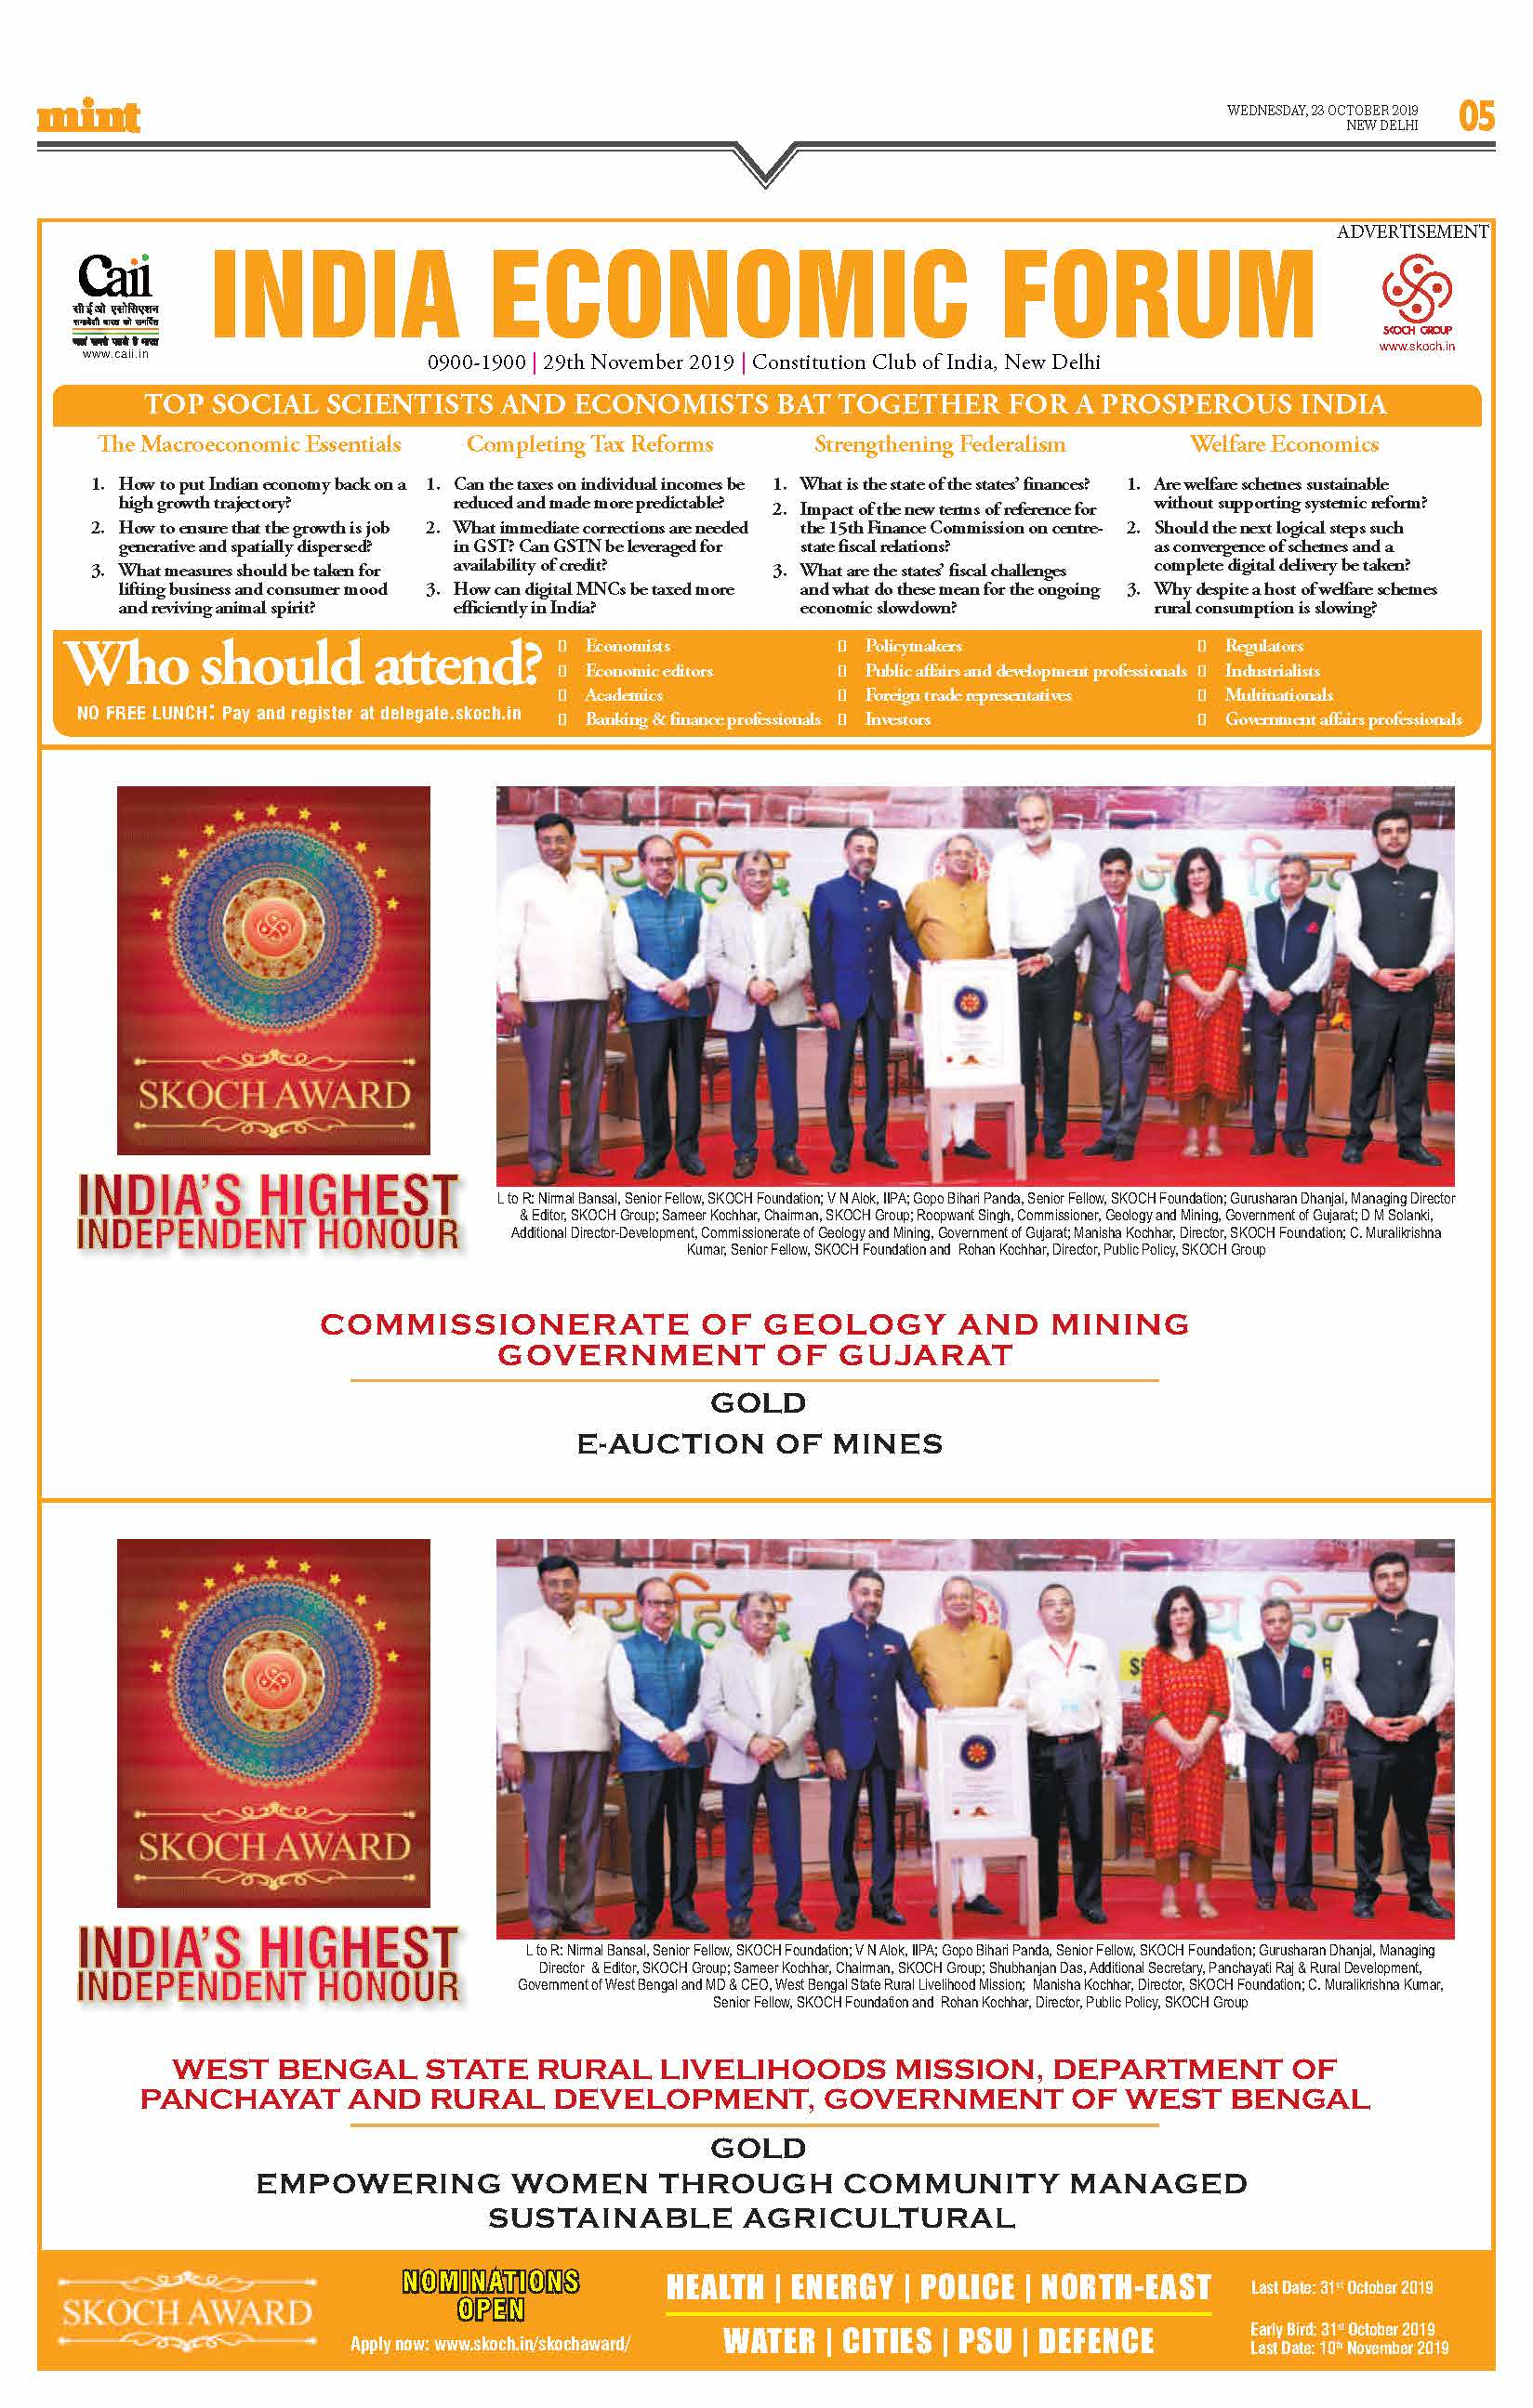 SKOCH Feature published in the Mint across all editions nationwide on 23rd October 2019